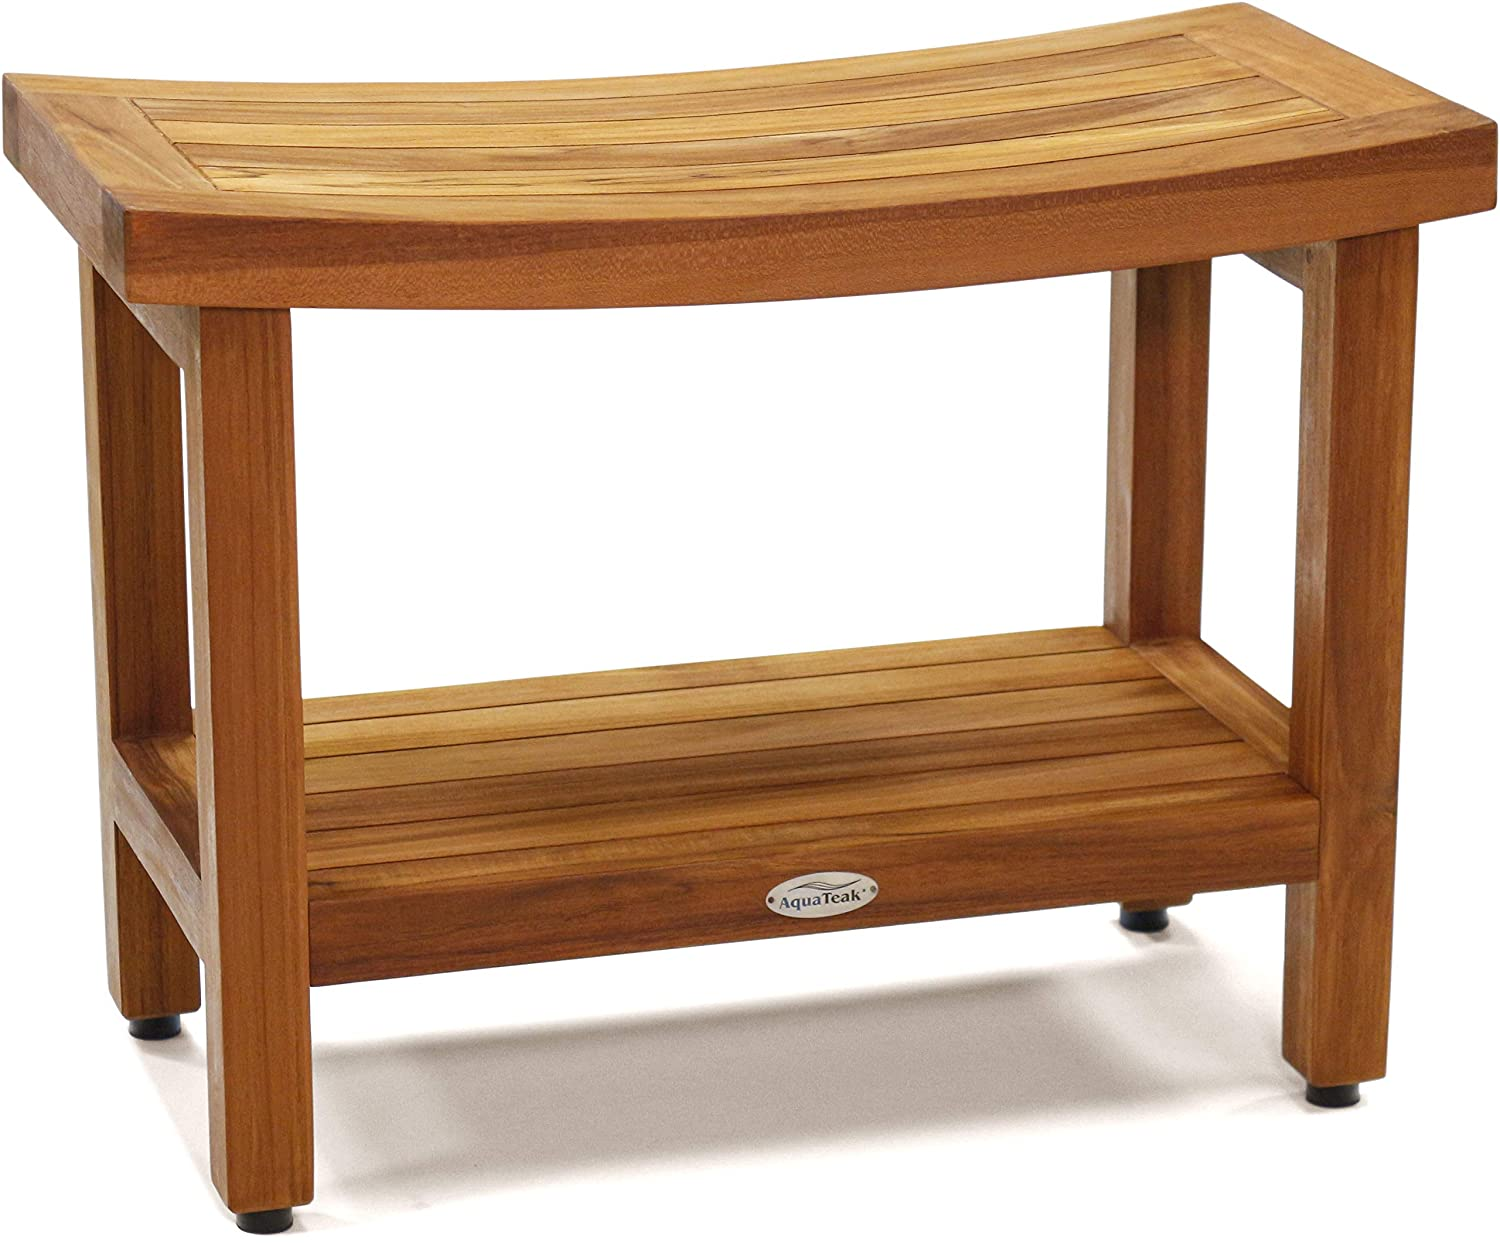 "AquaTeak Patented 24"" Sumba Teak Shower Bench with Shelf 816DHAwqMdL"